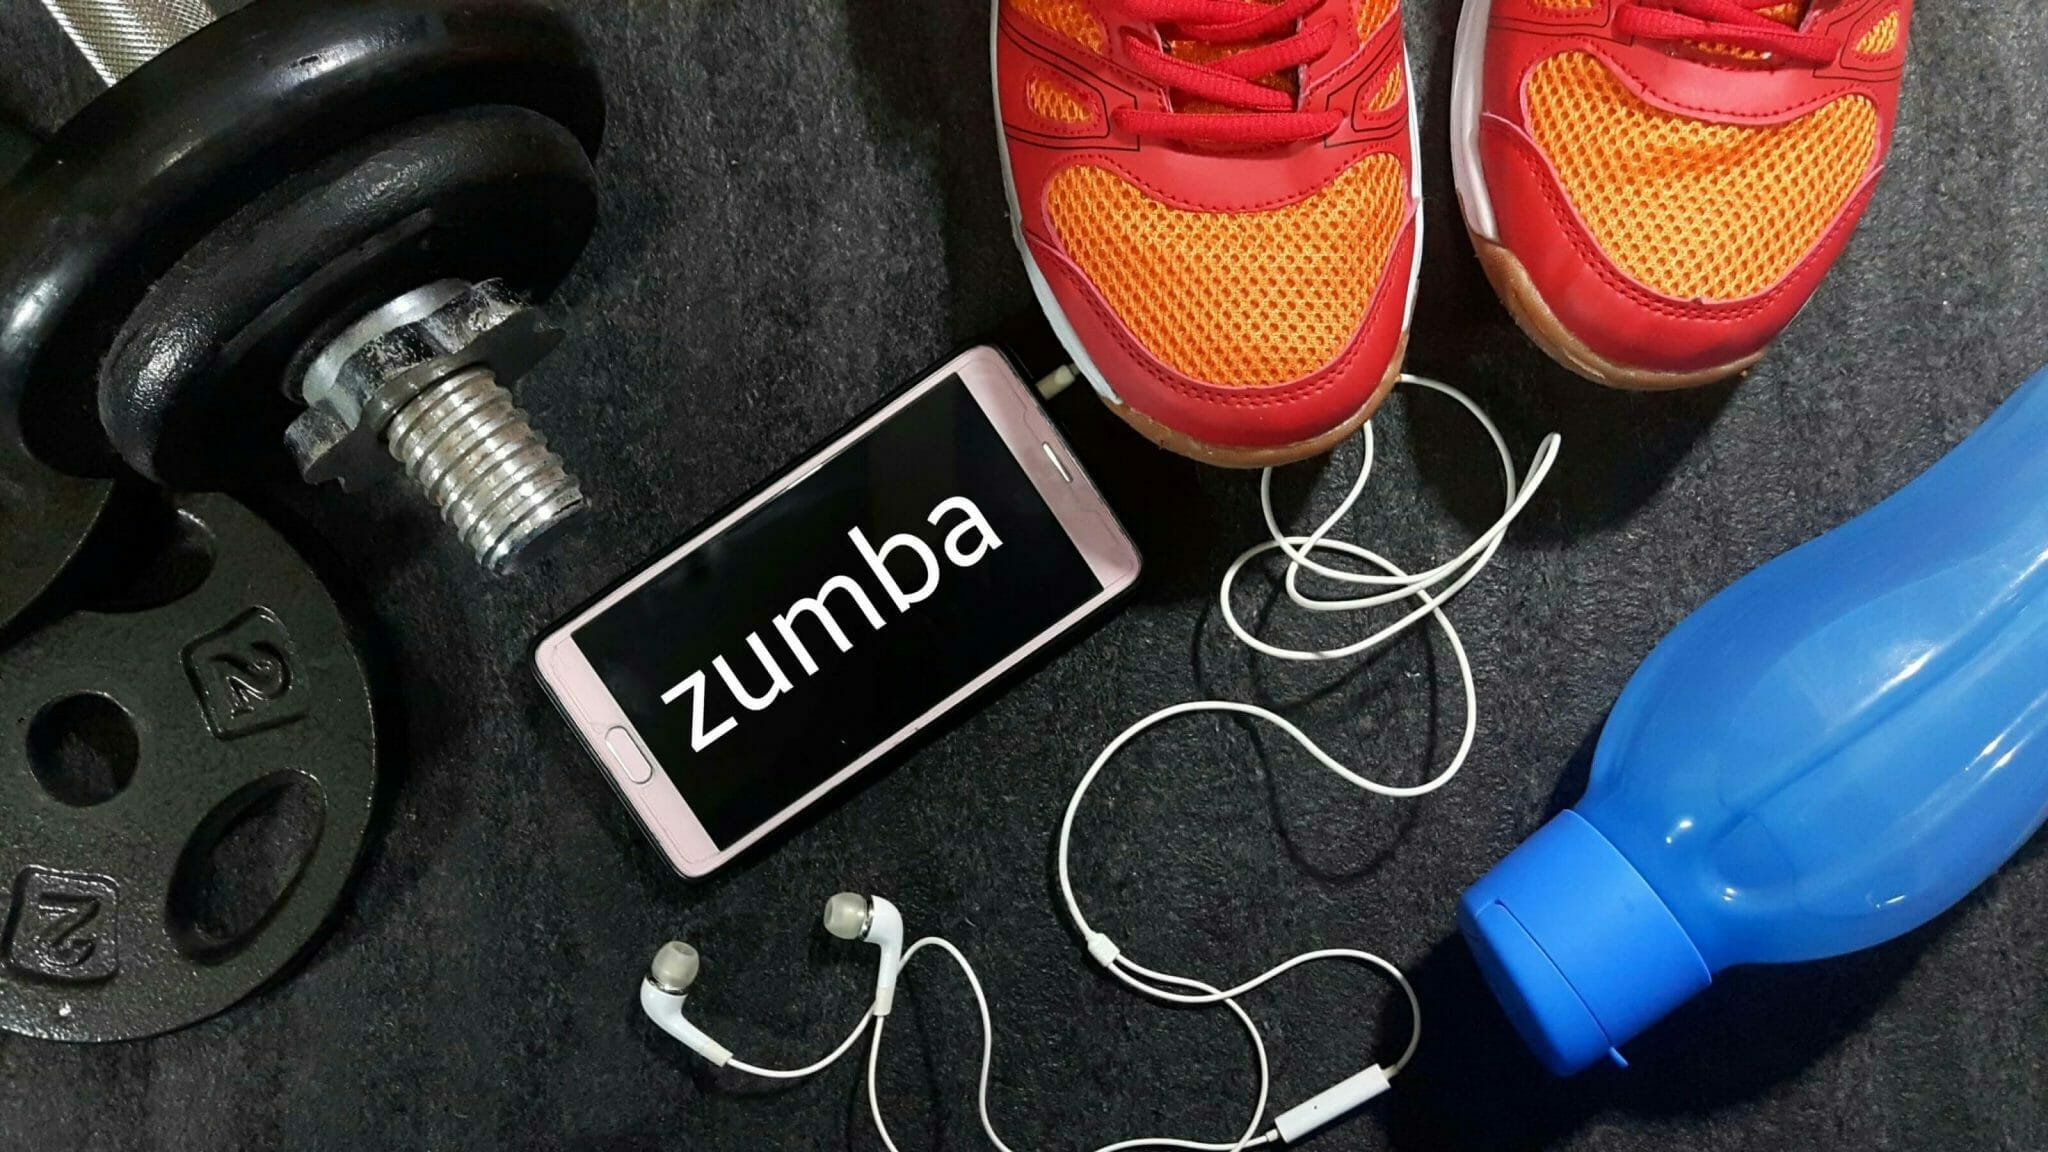 Zumba shoes featured with blue water bottle and iPhone and dumbbell